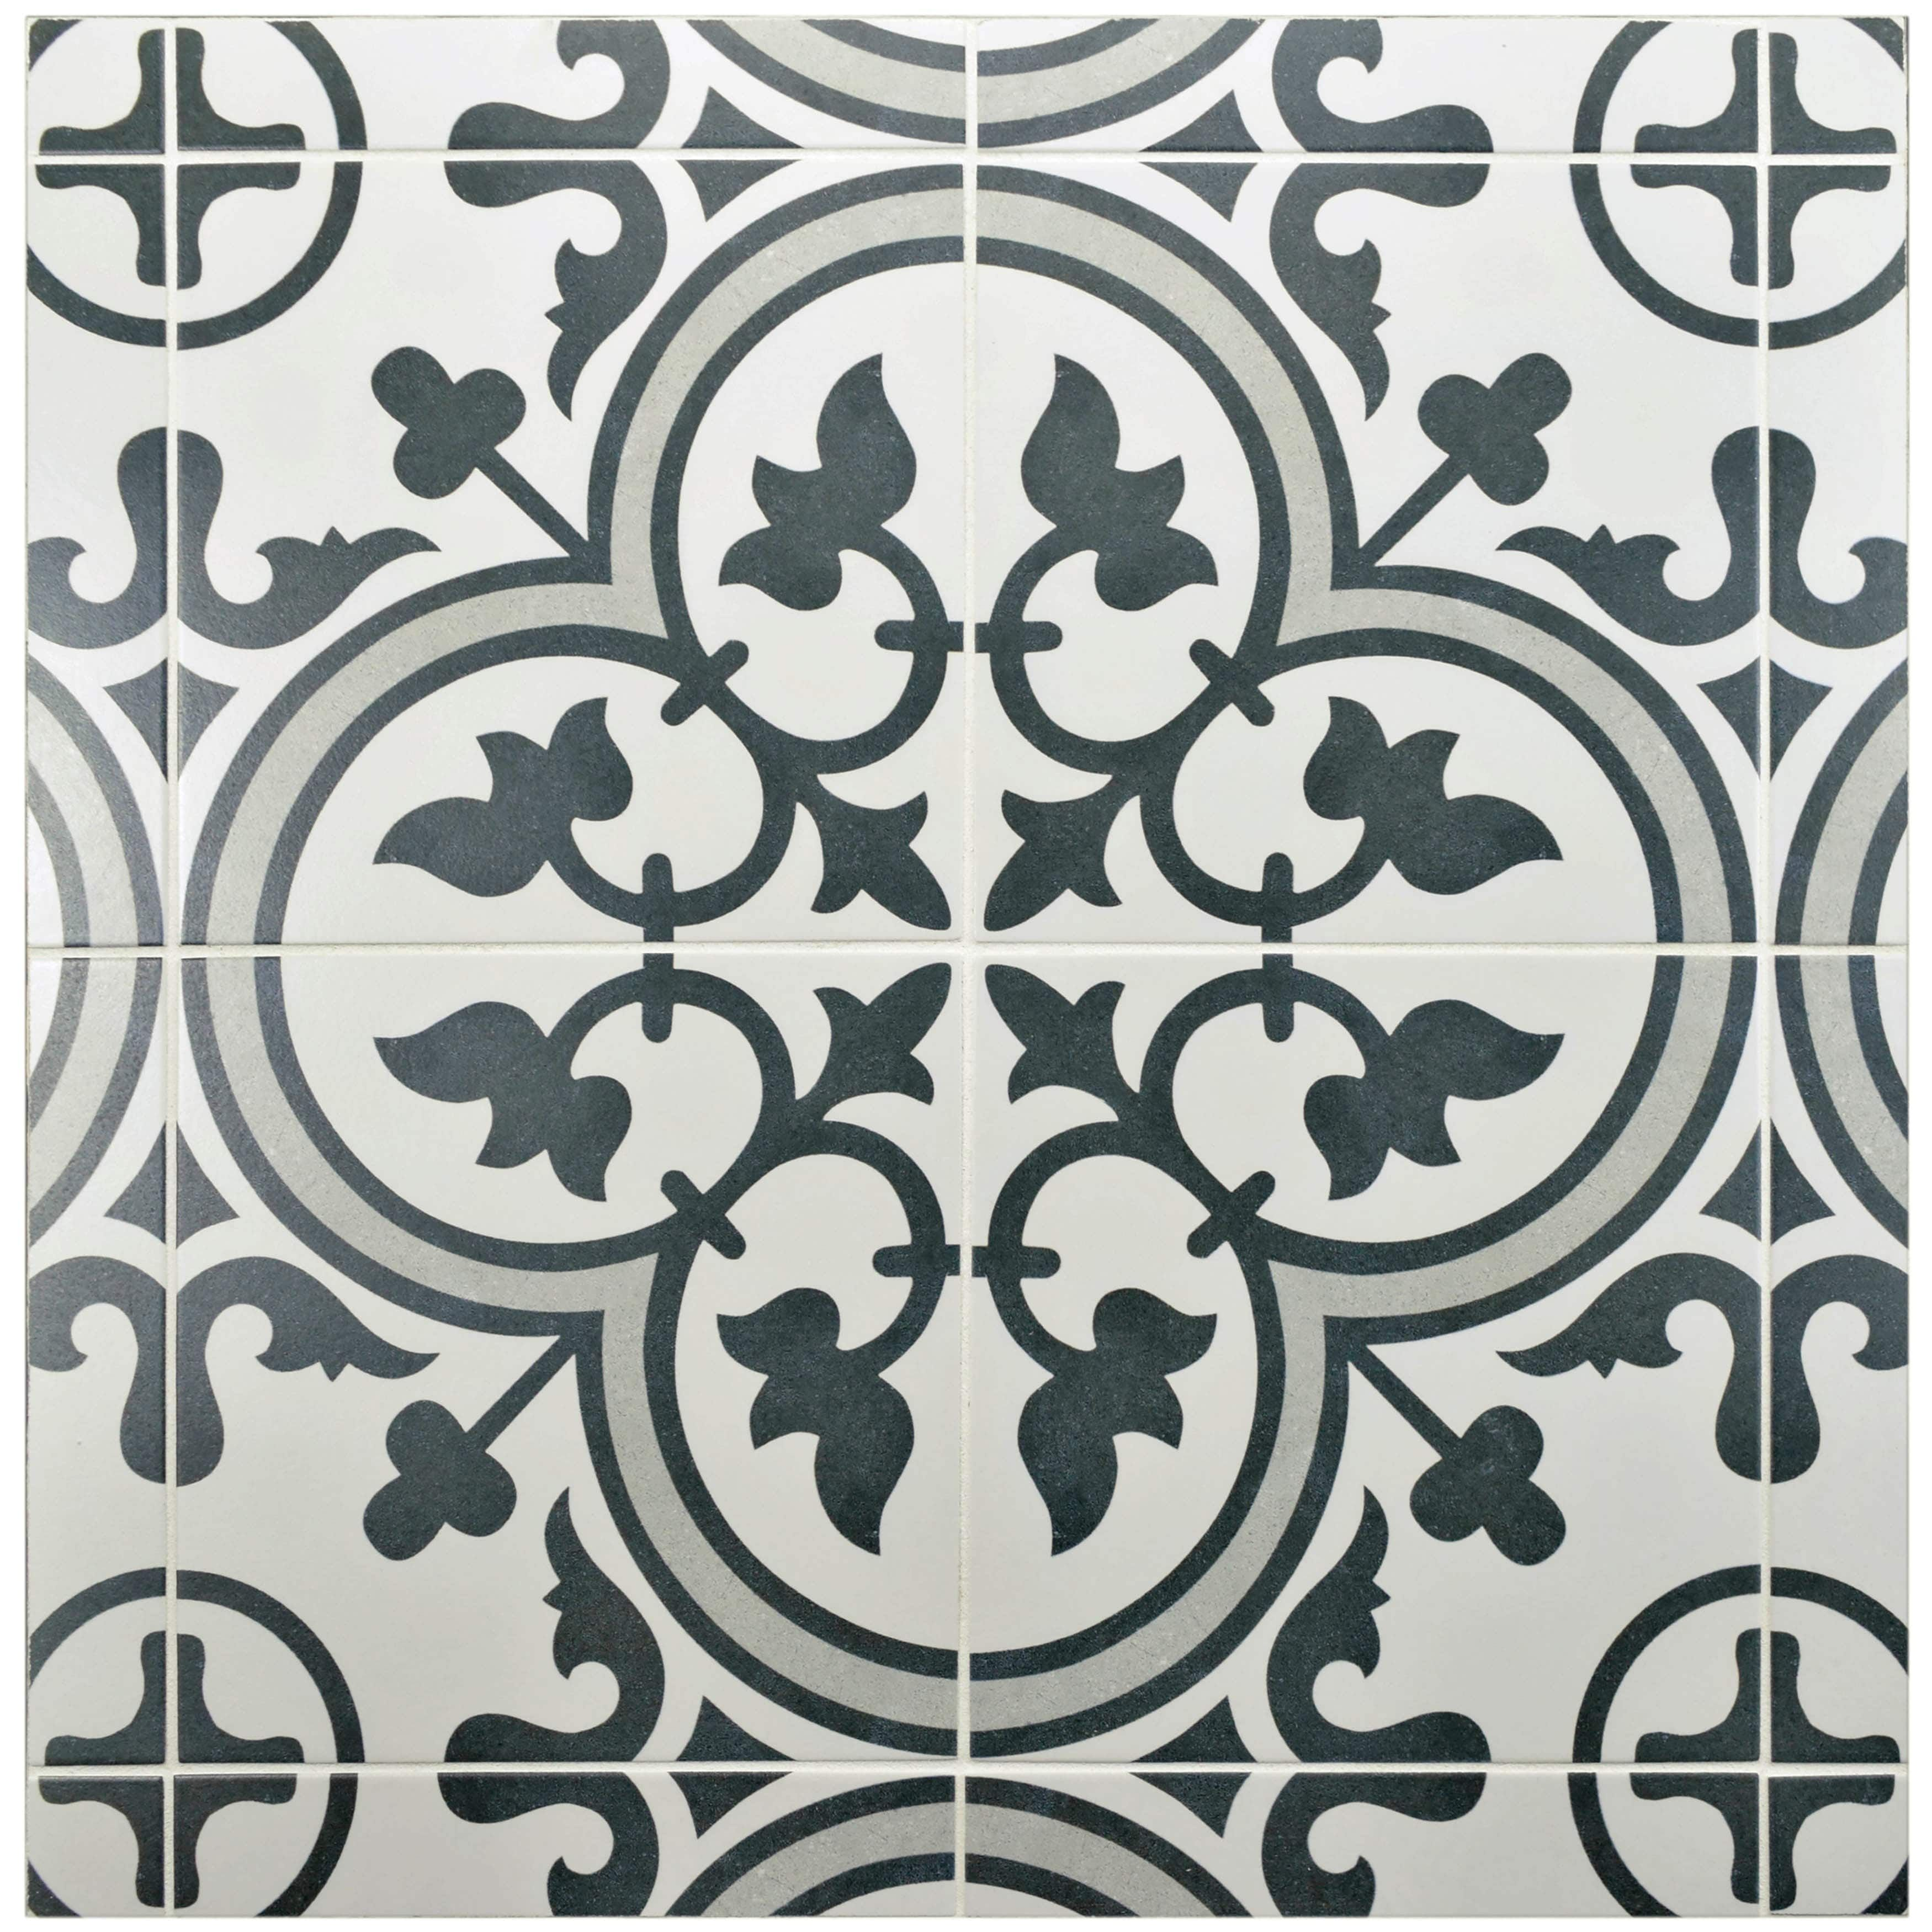 Somertile 975 x 975 inch art grey porcelain floor and wall tile somertile 975 x 975 inch art grey porcelain floor and wall tile case of dailygadgetfo Images